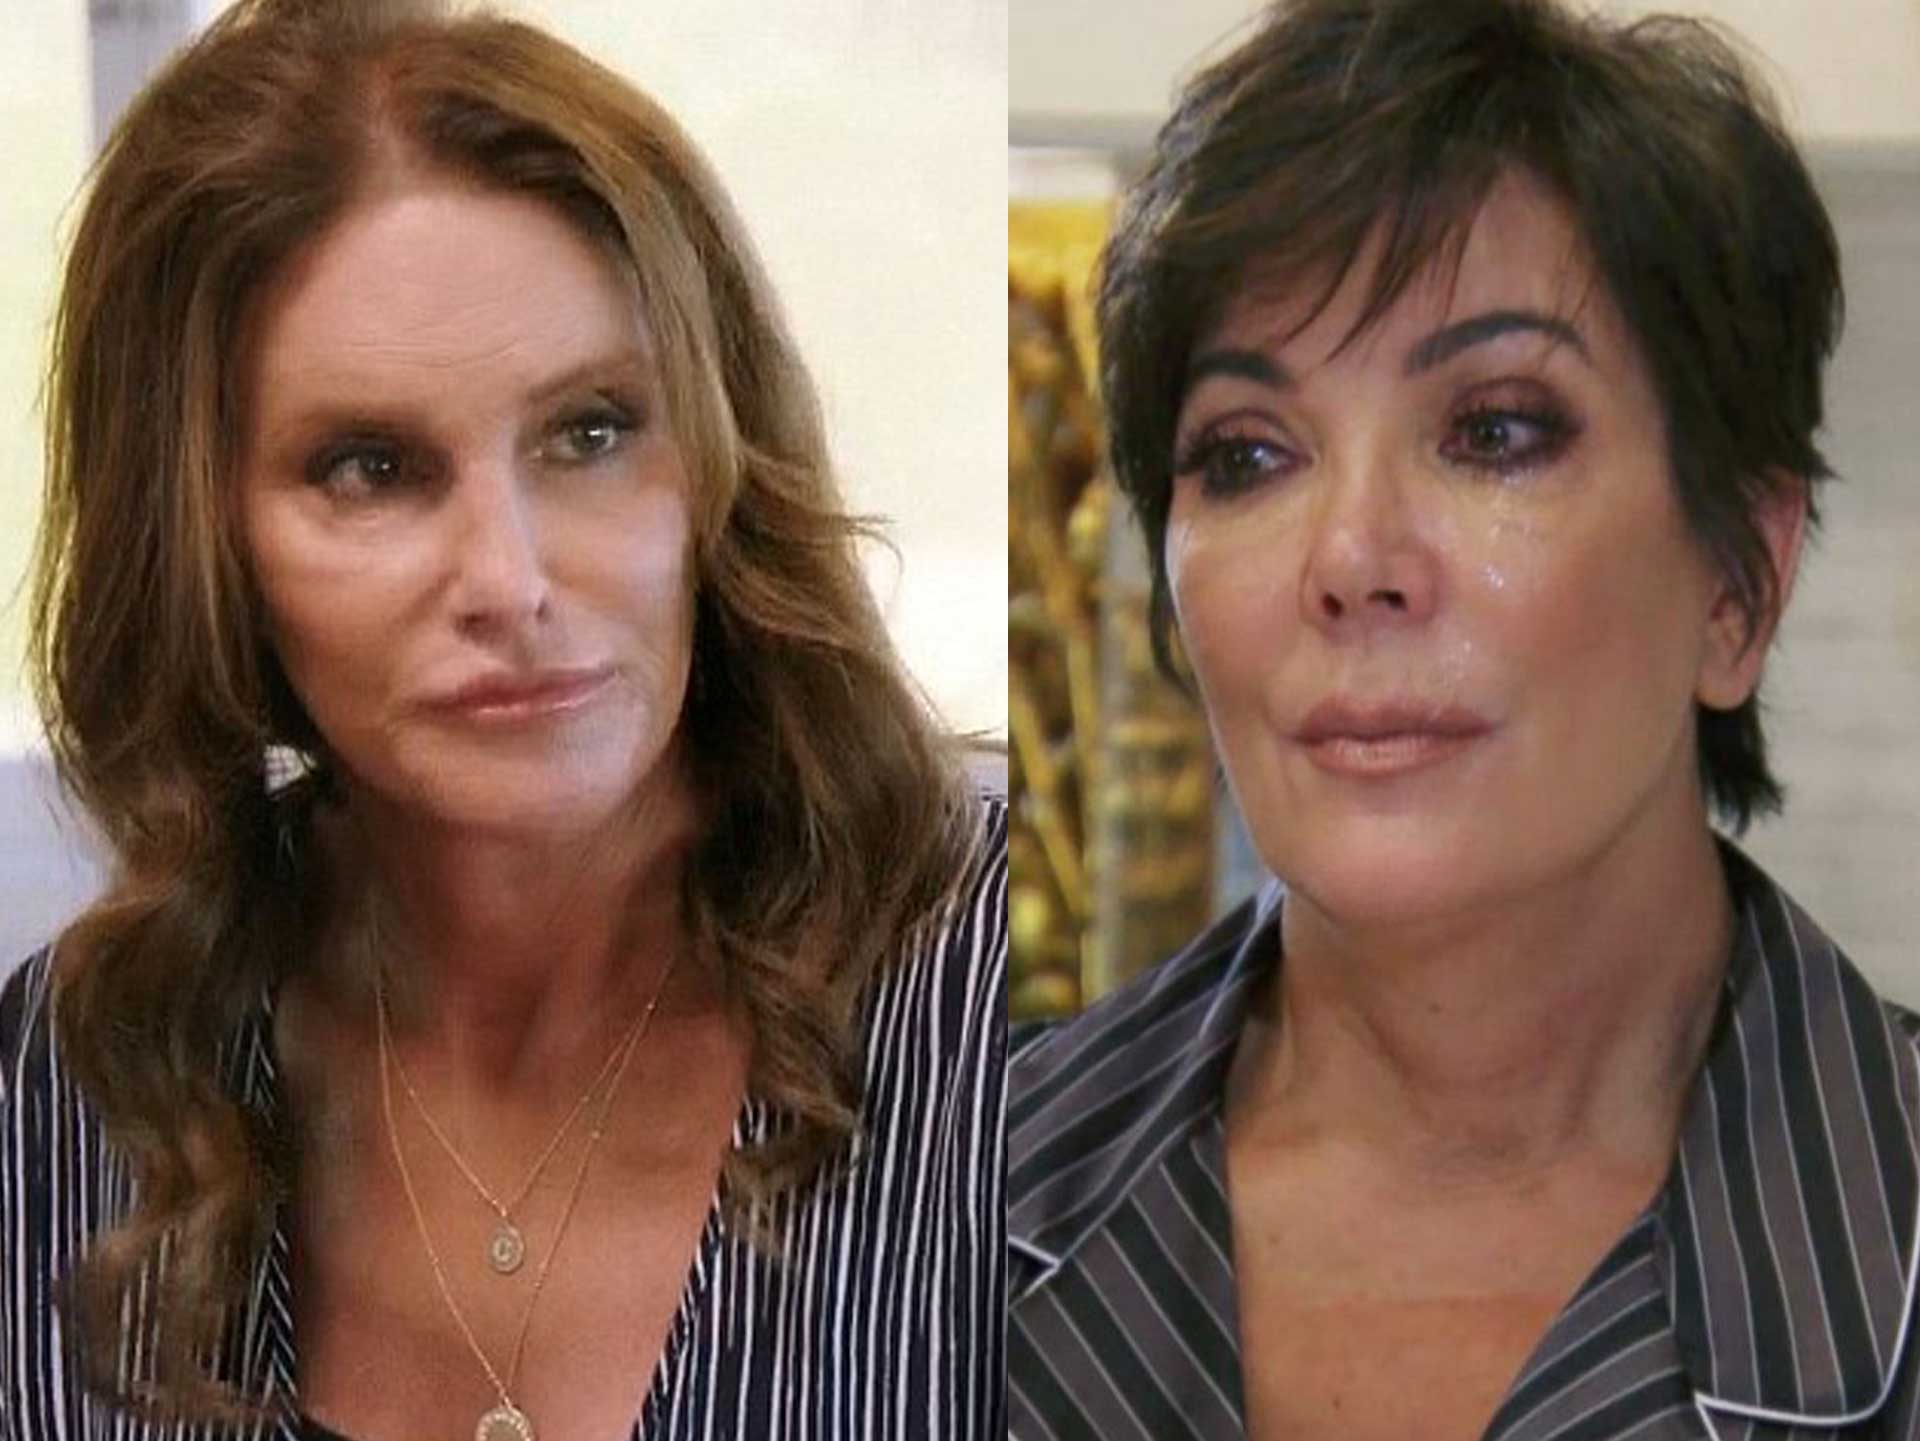 Caitlyn's book is all made up: Kris Jenner